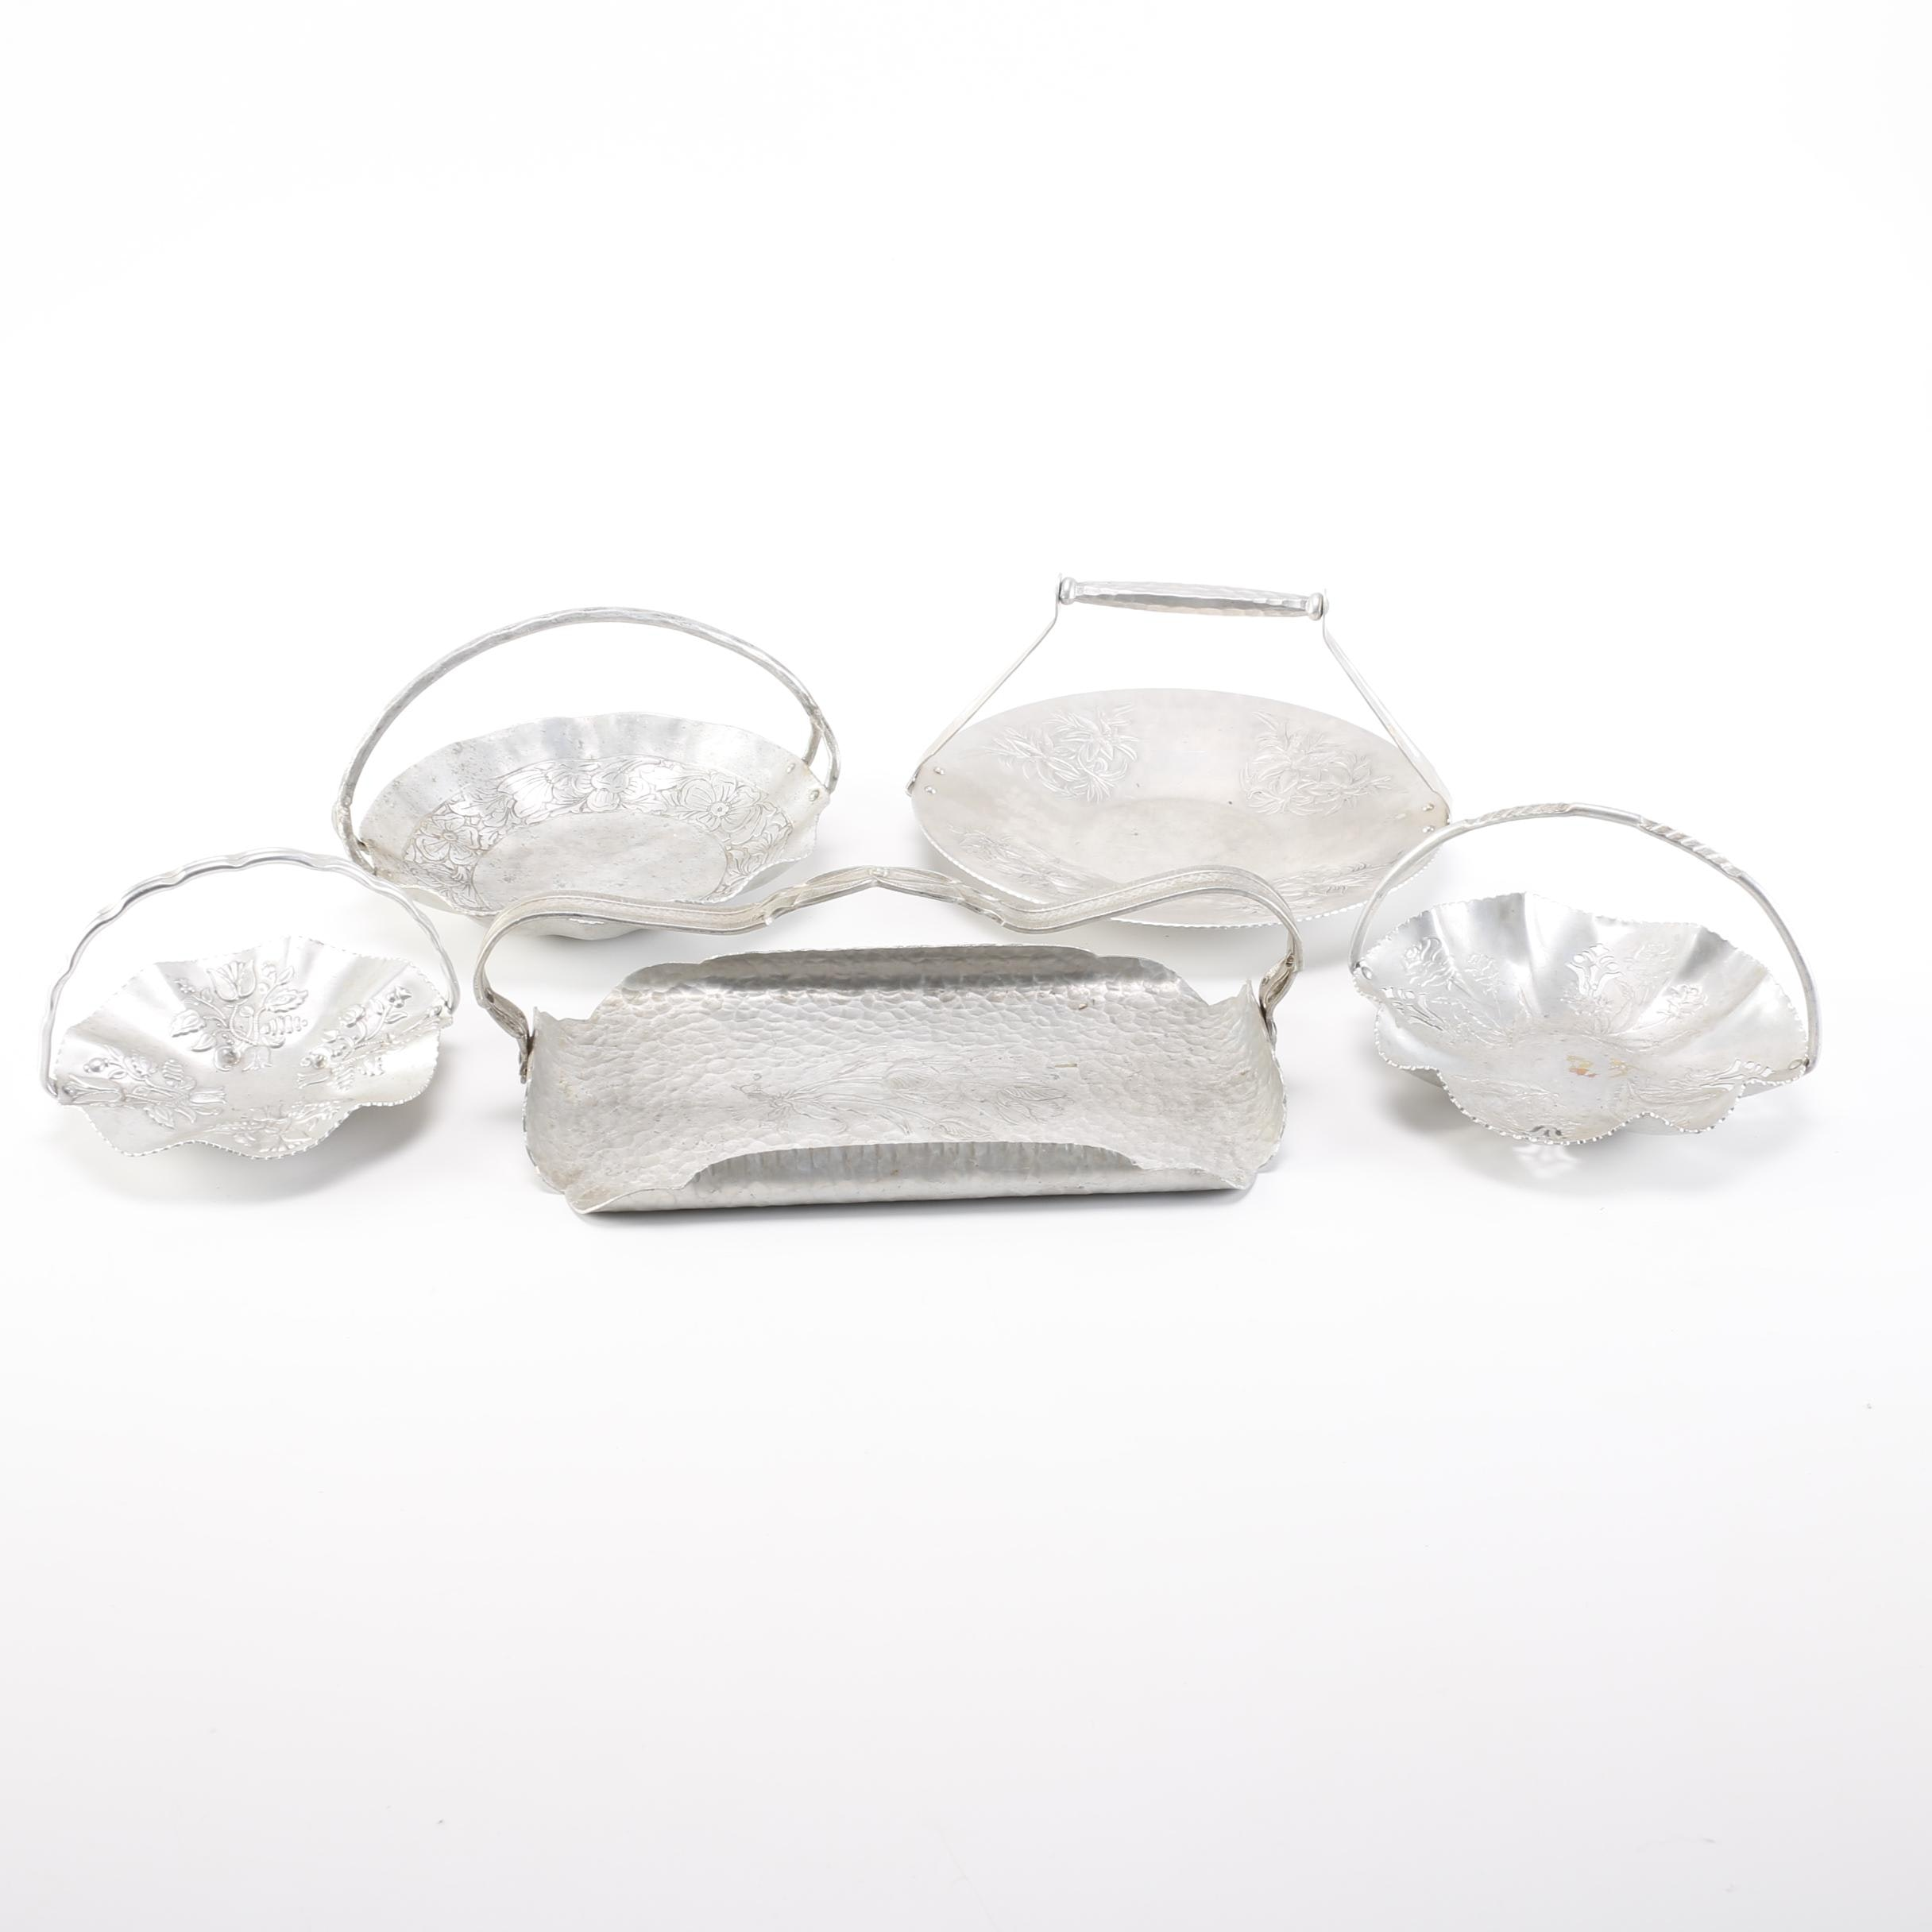 Collection Aluminum Ware Baskets